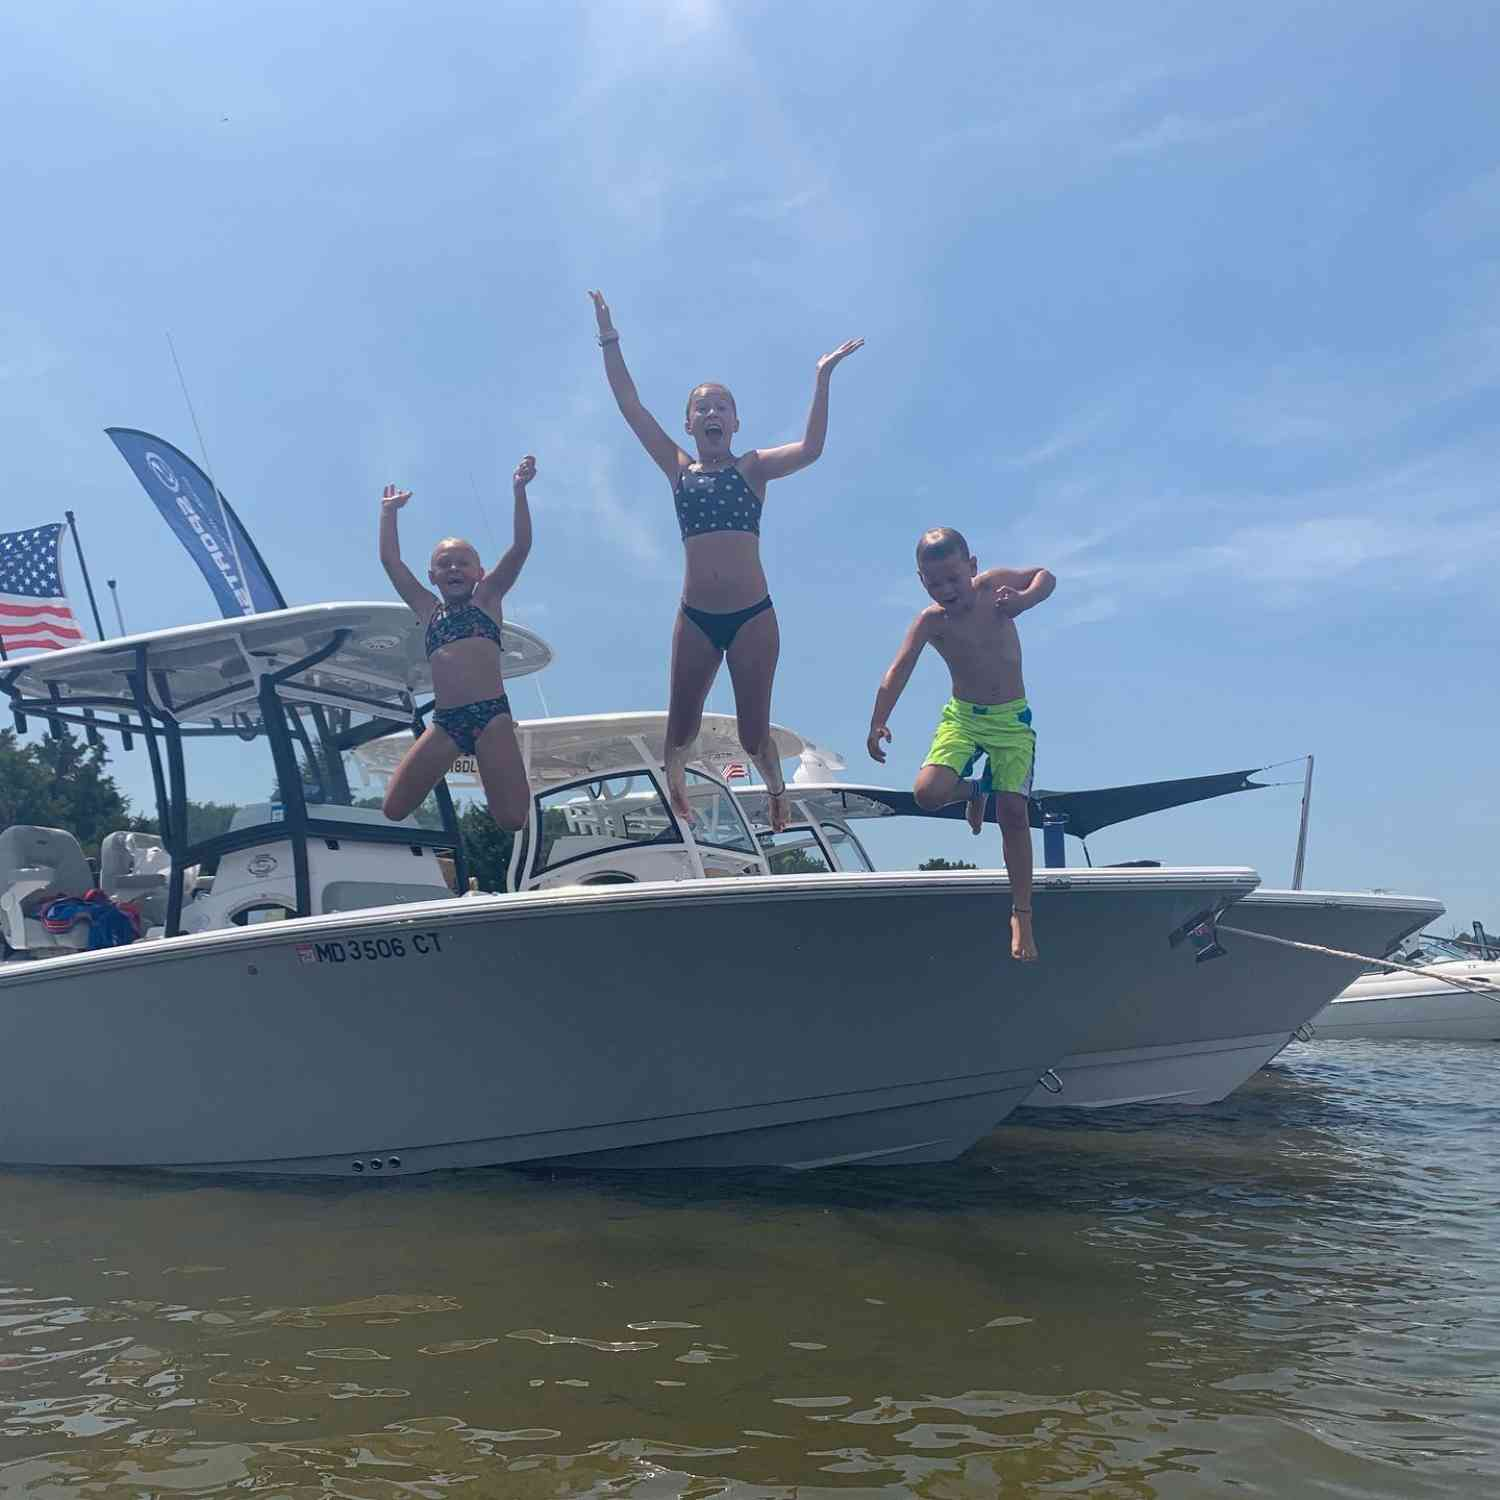 Title: Family Fun - On board their Sportsman Open 282 Center Console - Location: Seneca Creek, MD. Participating in the Photo Contest #SportsmanJune2020